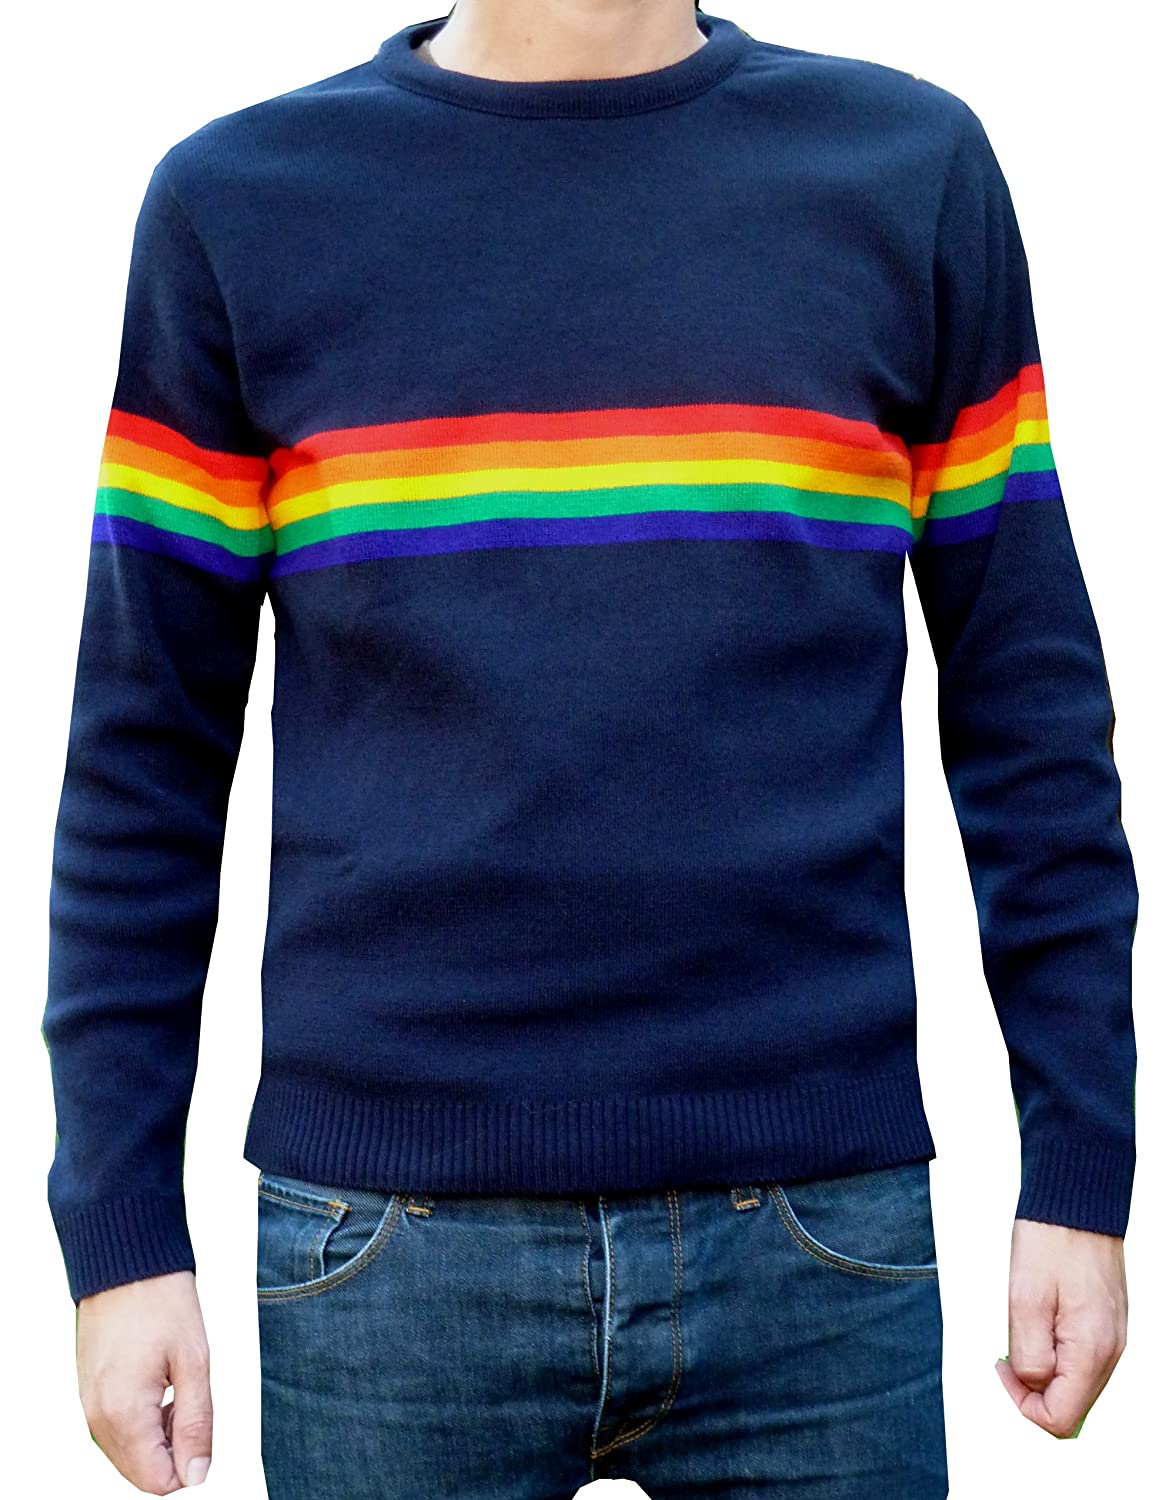 1960s Men's Clothing, 70s Men's Fashion Fuzzdandy - Mens Navy Rainbow Elo Jumper Indie Retro Vintage $38.00 AT vintagedancer.com